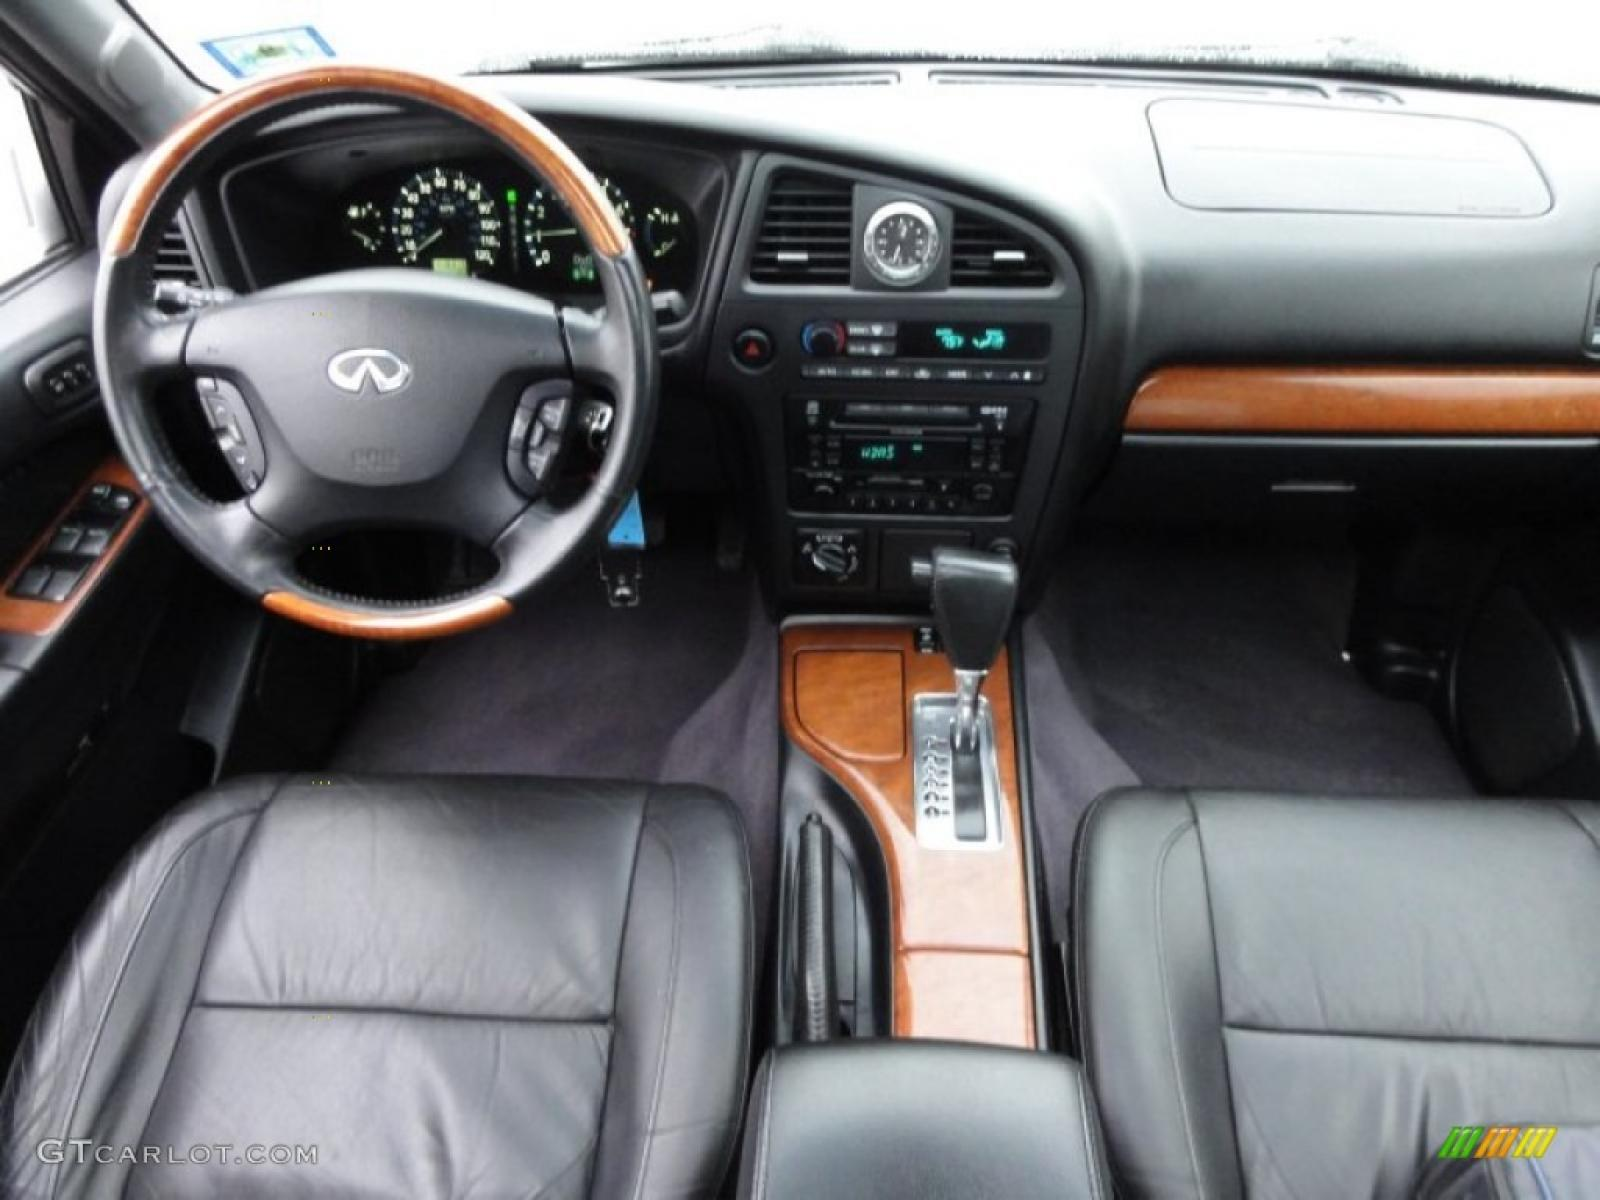 02 infiniti qx4 interior images diagram albumartinspiration 02 infiniti qx4 interior images diagram 2002 infiniti qx4 lifted image collections hd cars wallpaper infiniti vanachro Gallery